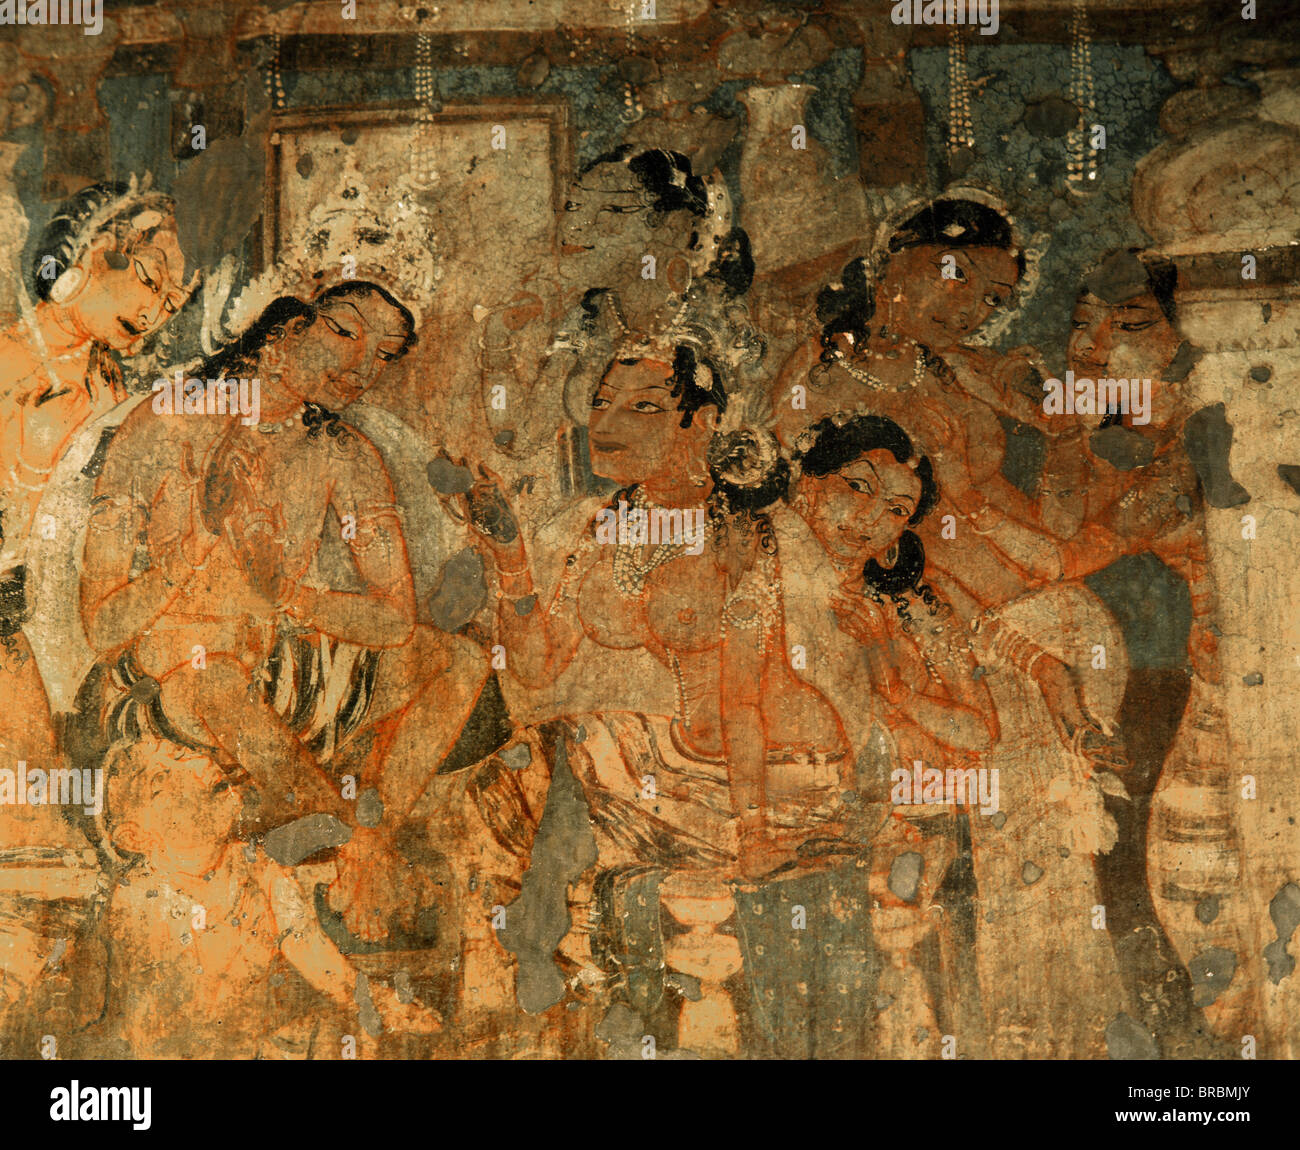 Detail of mural depicting king and queen, inside Cave No.1, Ajanta, UNESCO World Heritage Site, Maharashtra, India - Stock Image